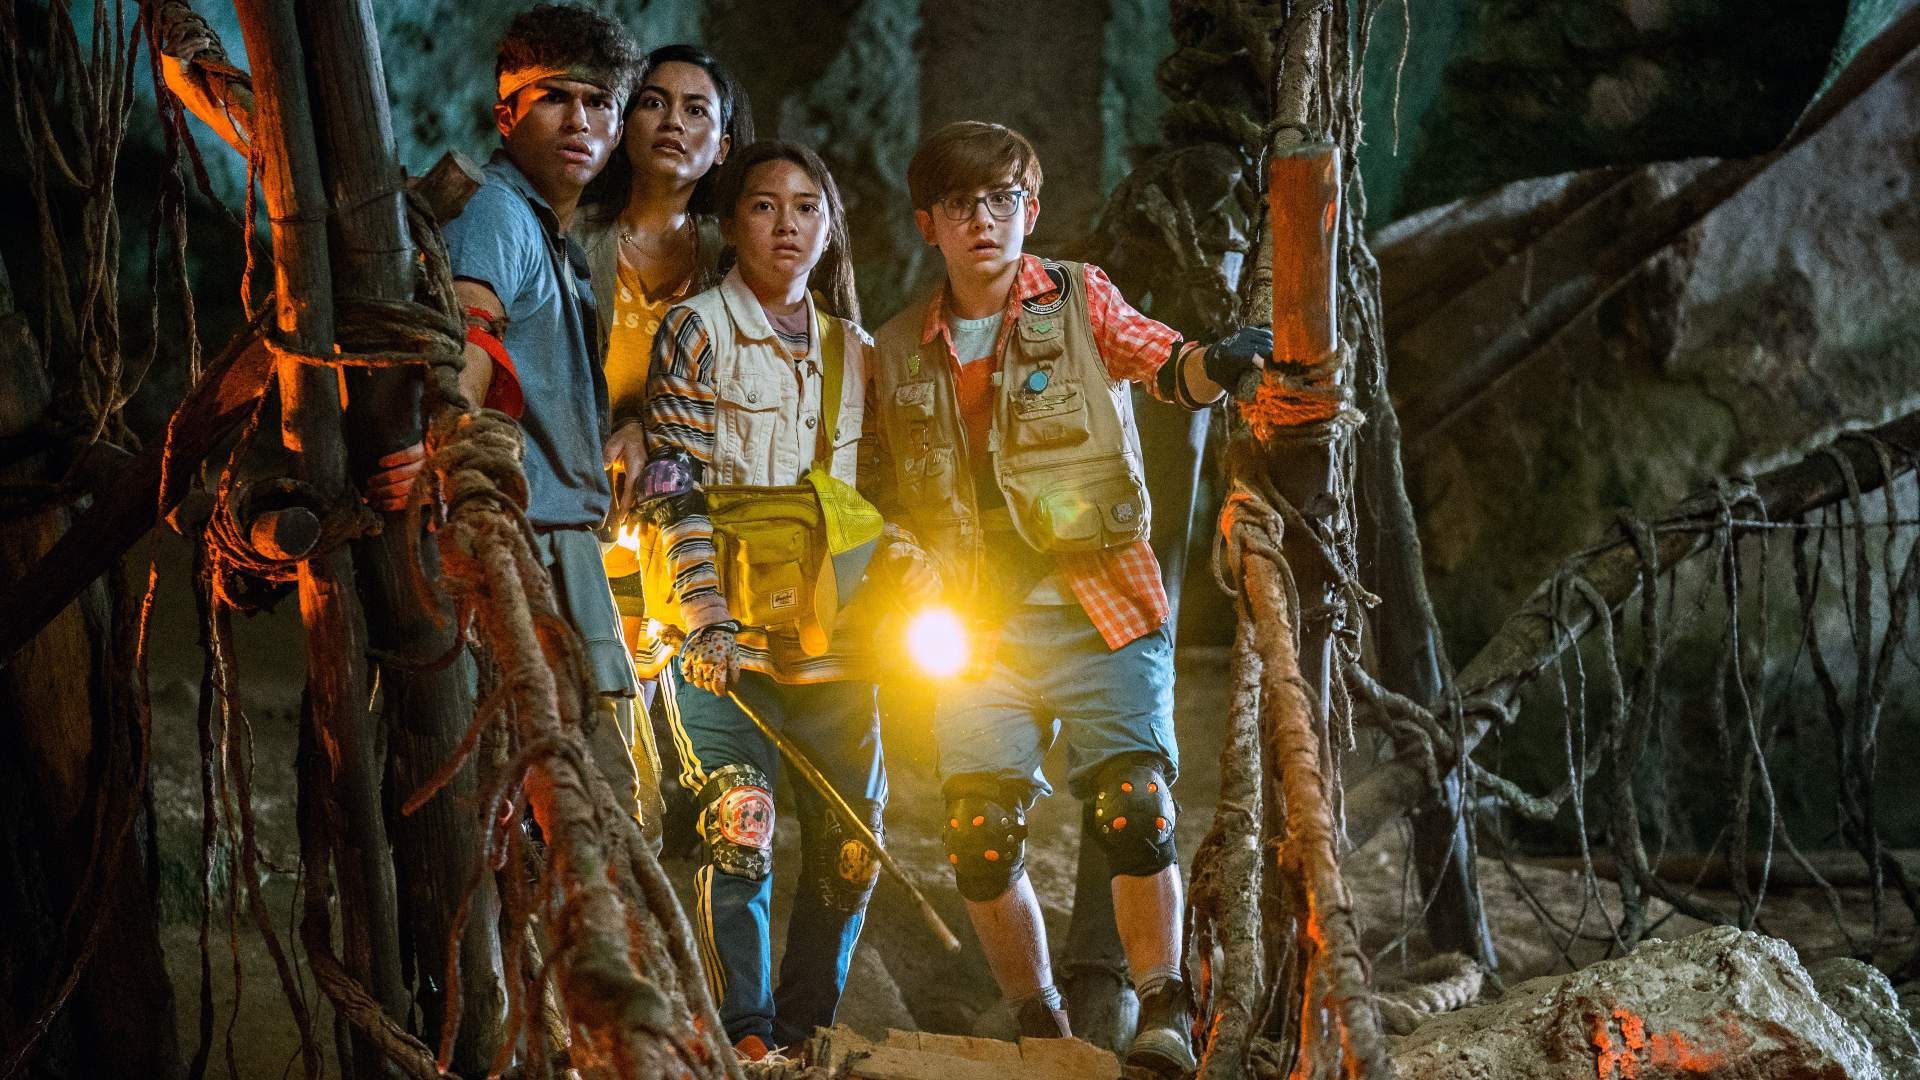 Finding 'Ohana Trailer: Goonies for Gen Z